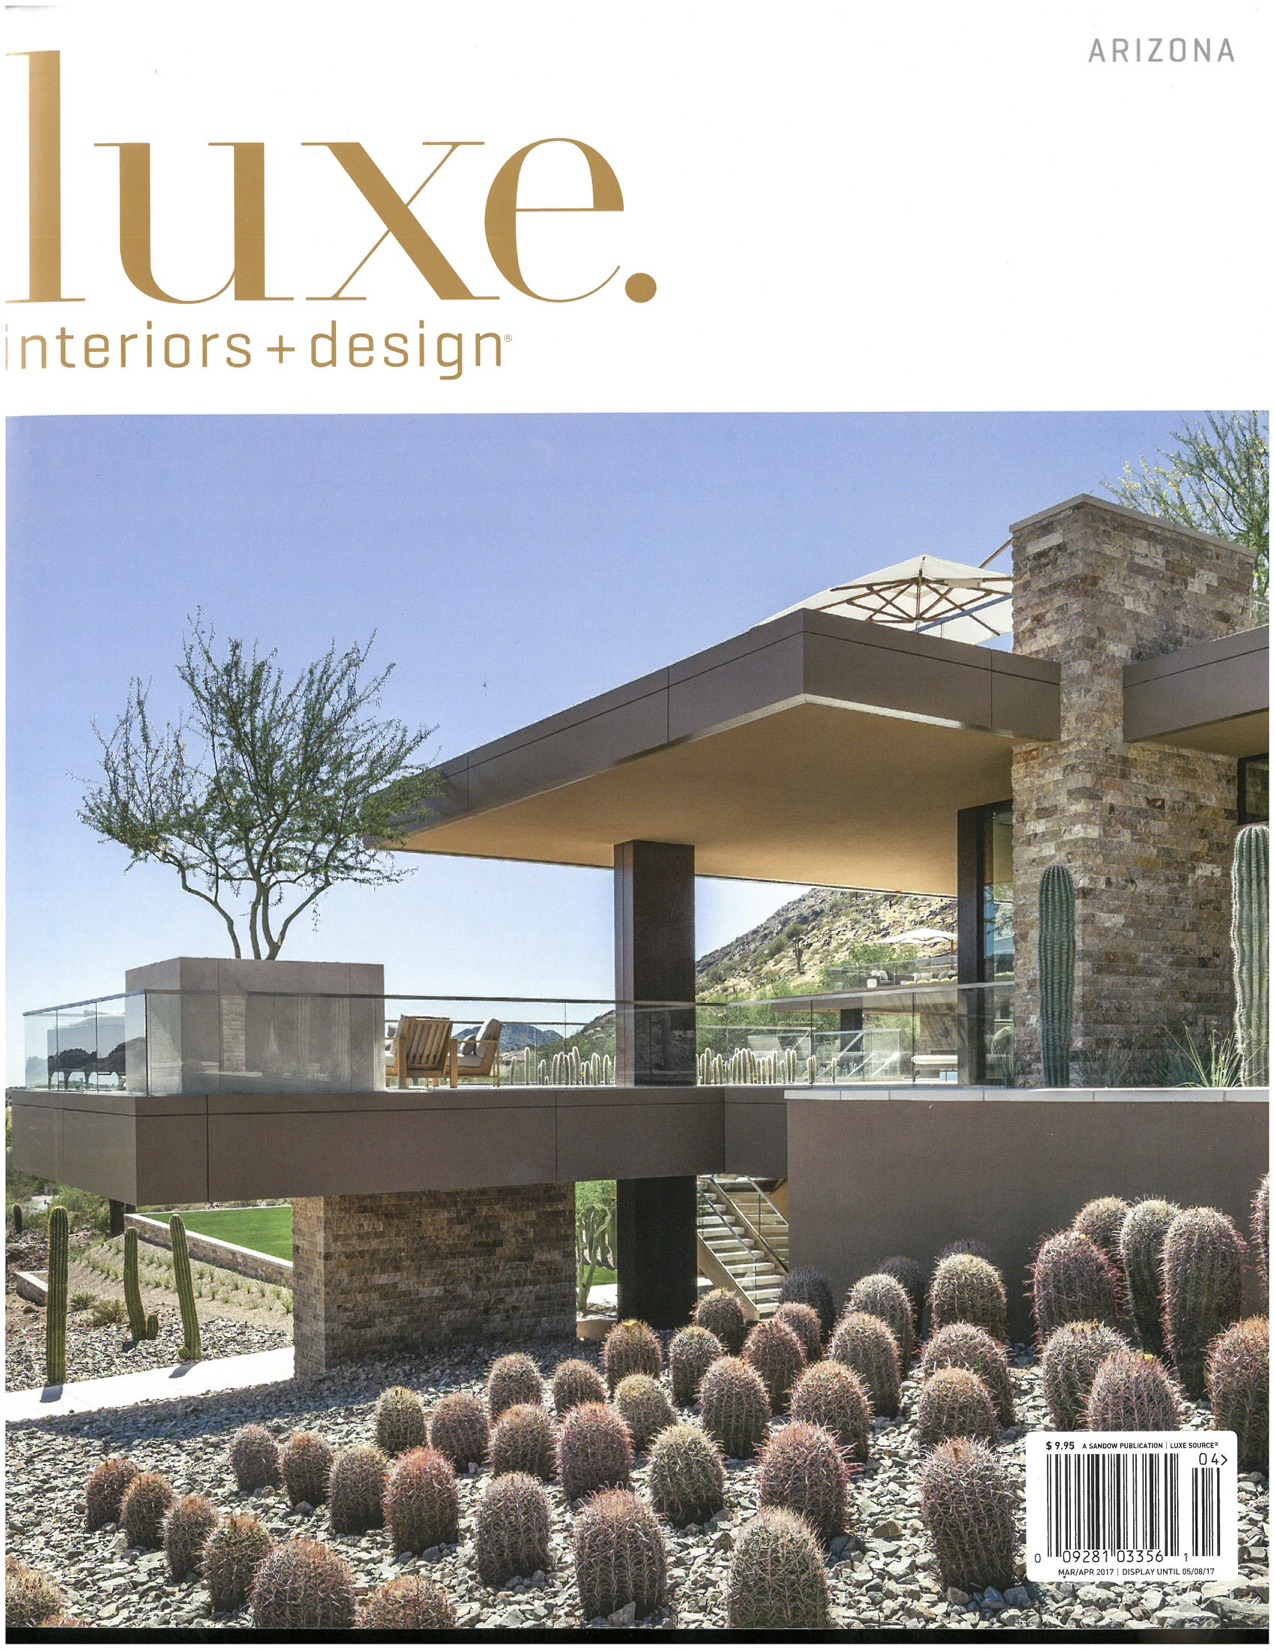 Luxe2017MarCover.jpg